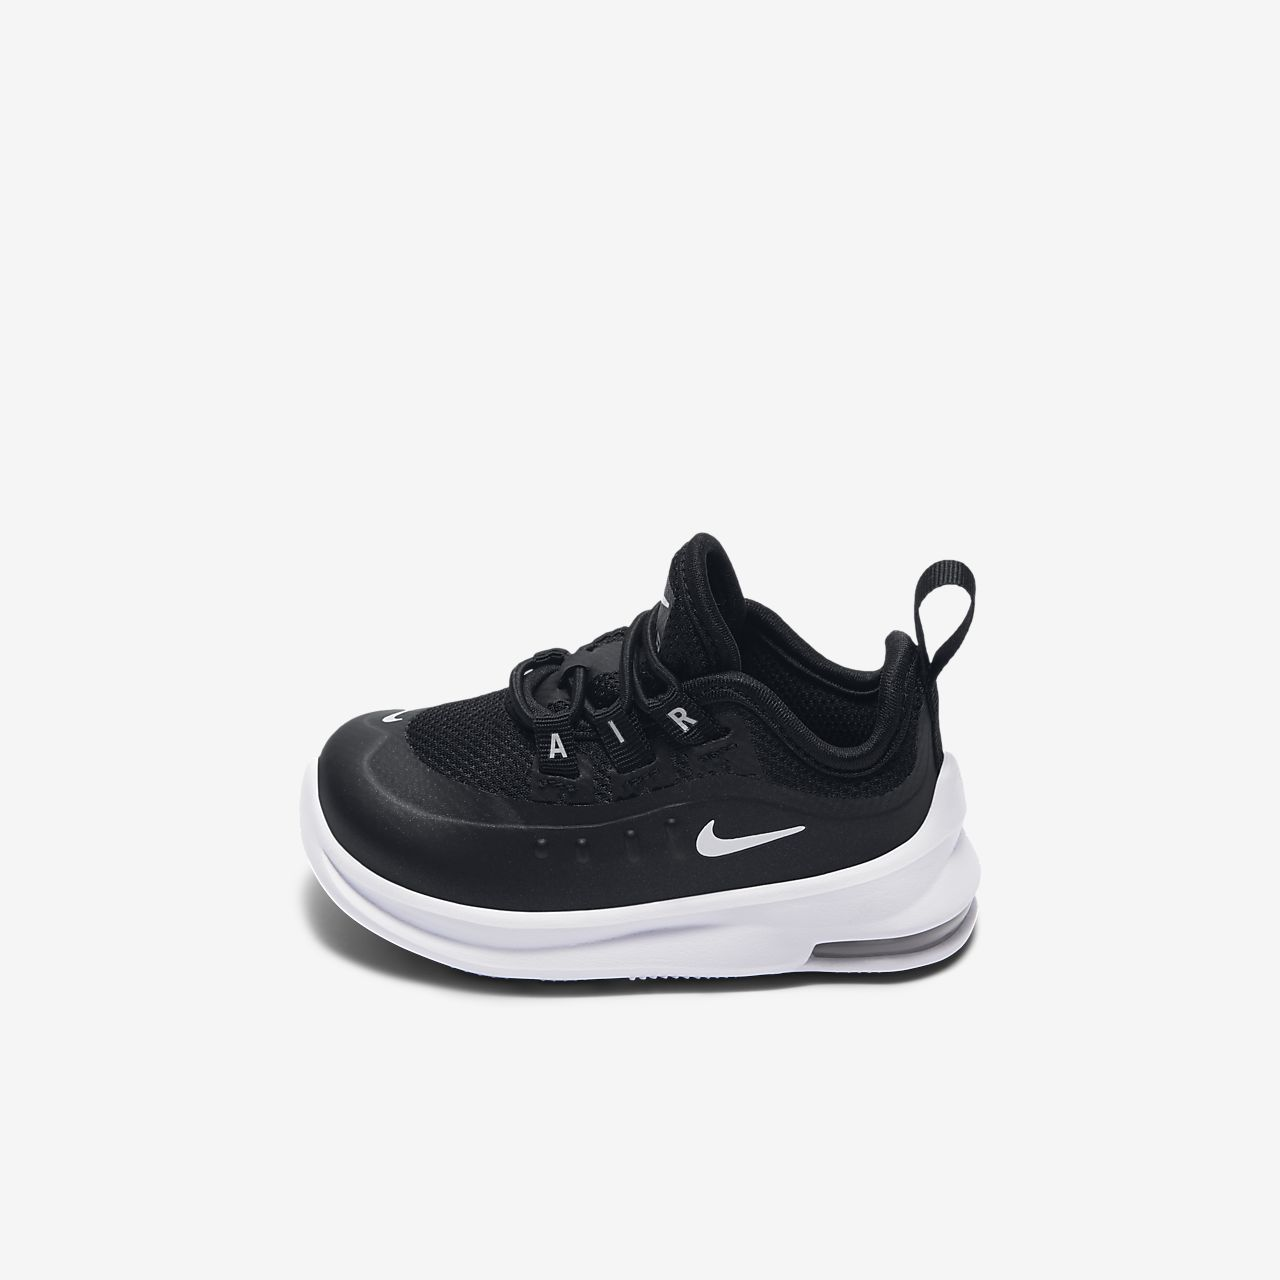 quality design ff6d6 ccfe7 ... Nike Air Max Axis Schoen voor baby s peuters